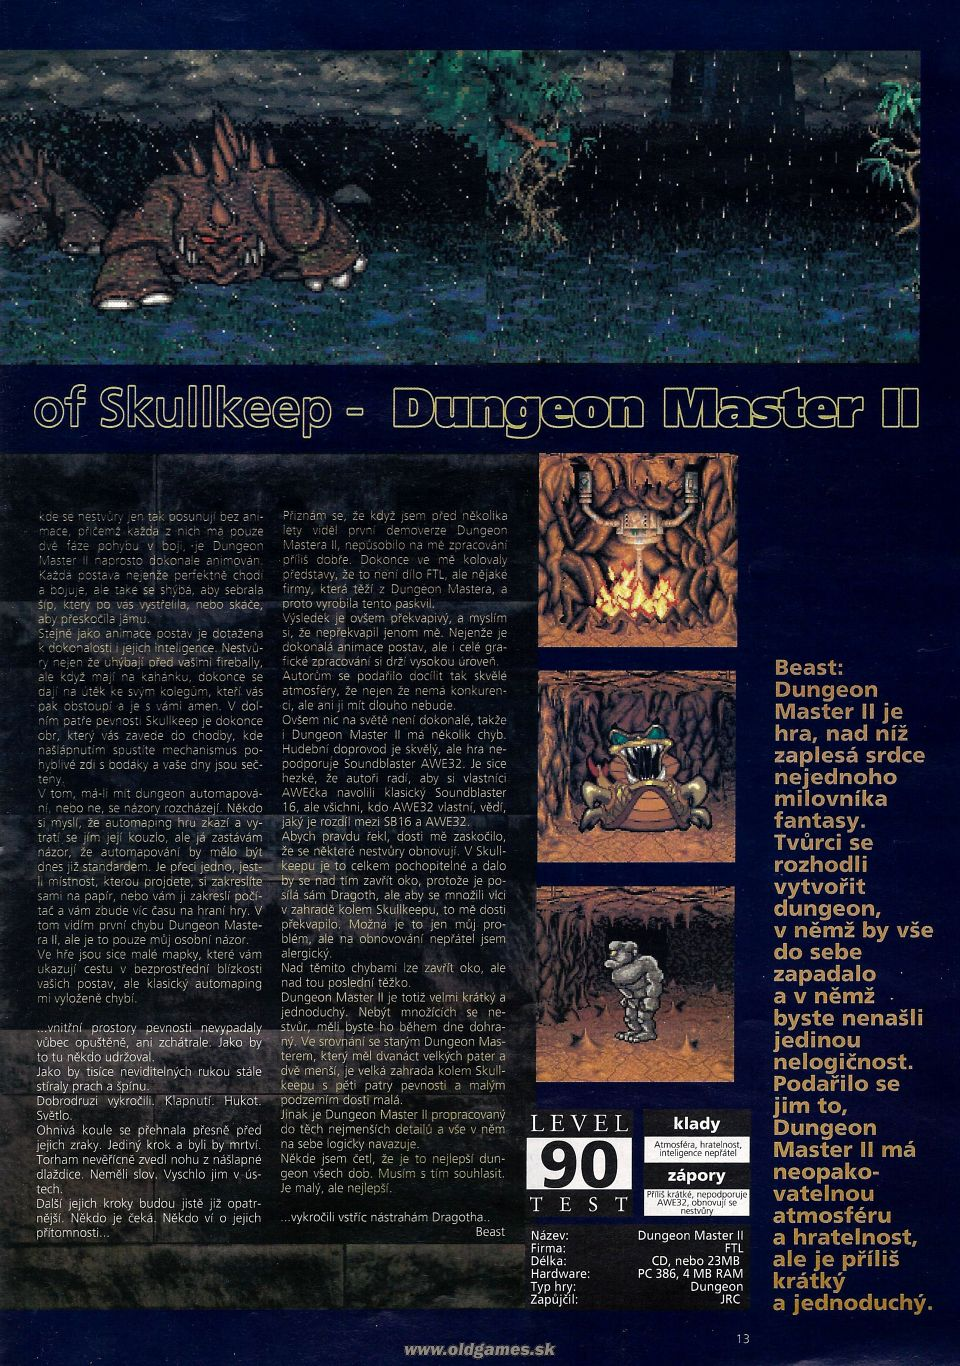 Dungeon Master II for PC Review published in Czech magazine 'Level', Issue #8 September 1995, Page 13